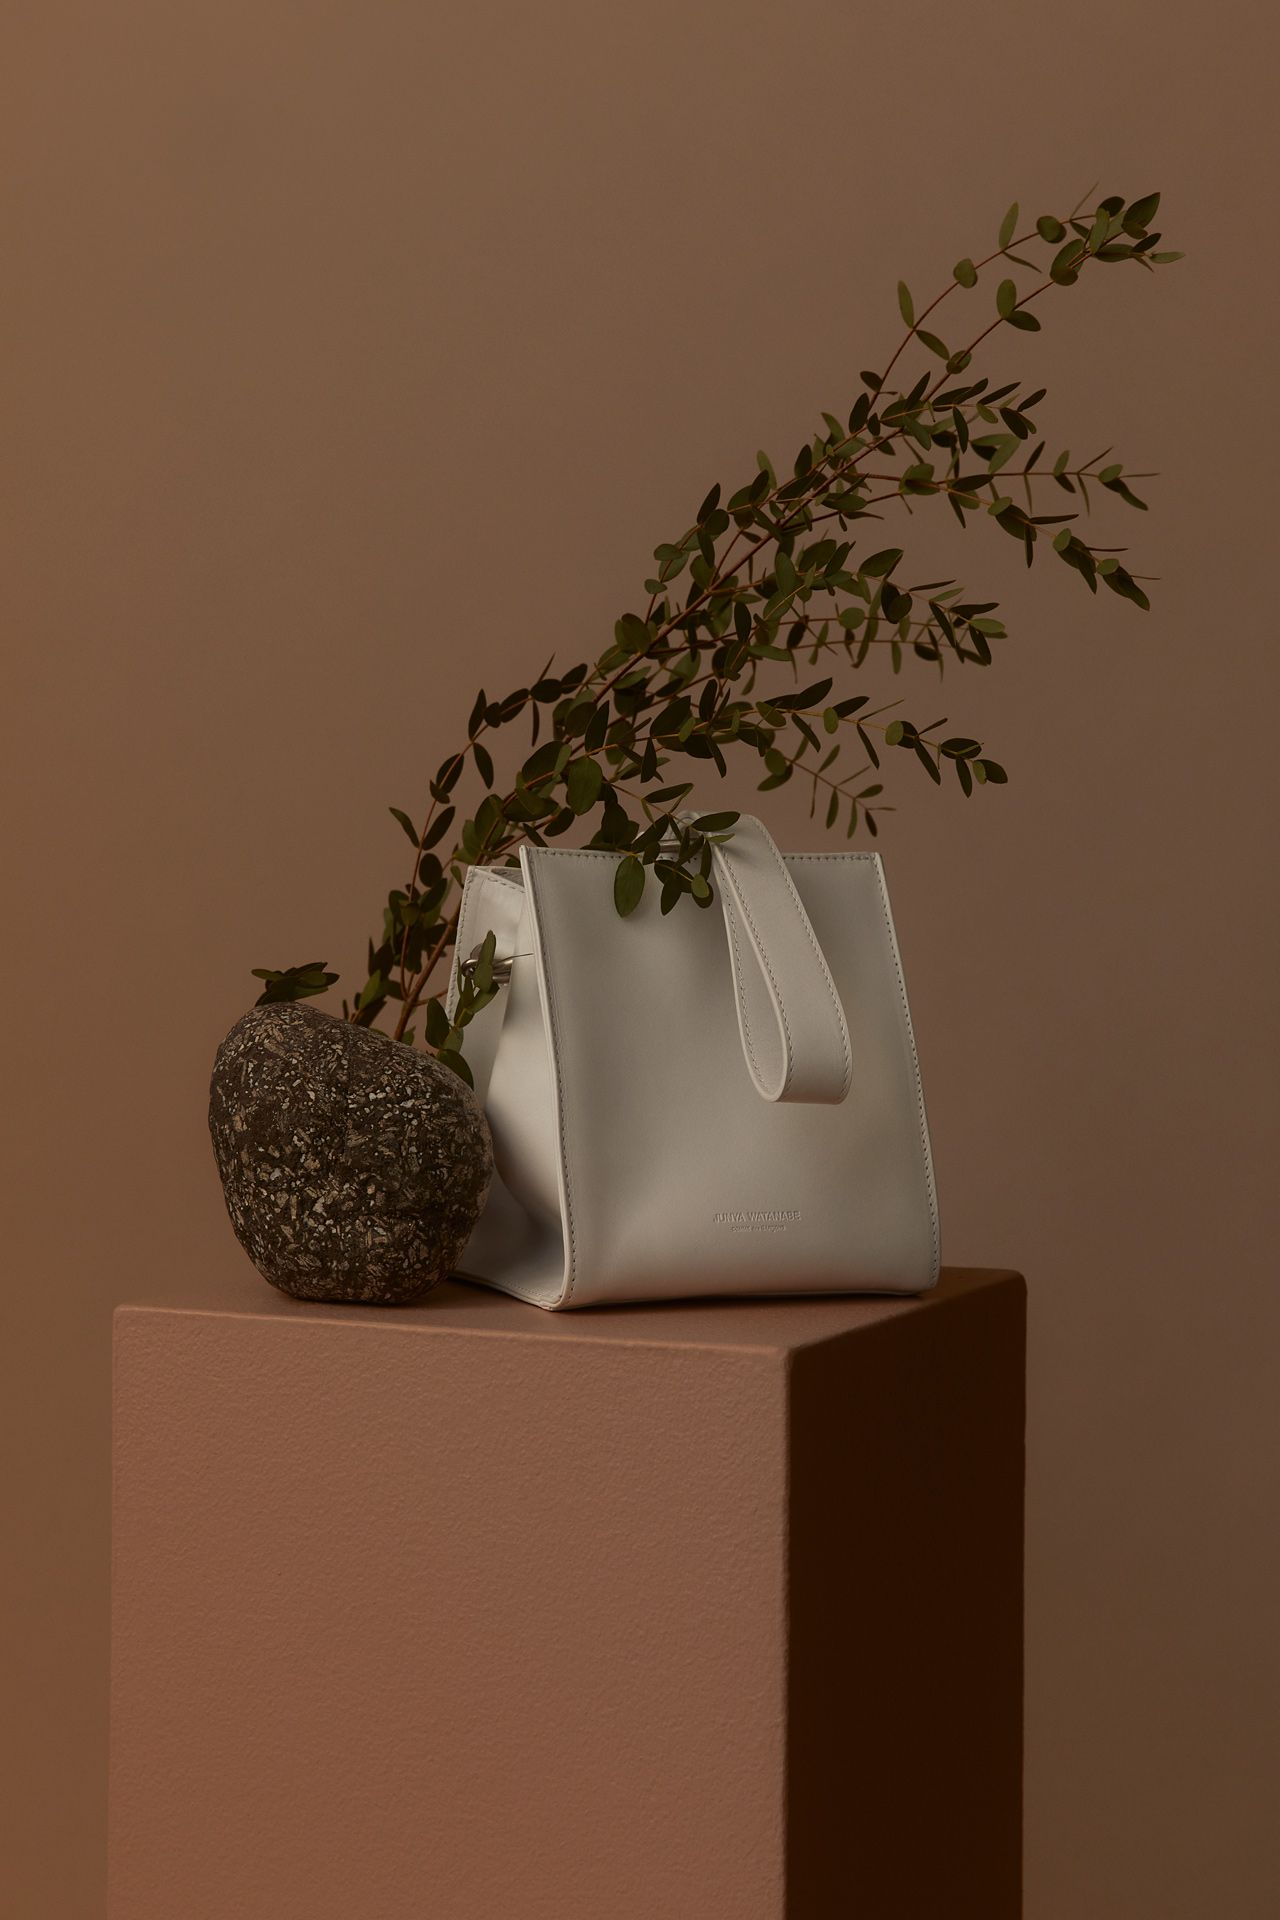 white leather purse with branch of eucalyptus next to it on brown block on brown background photographed by Kelly Jacob for LEV